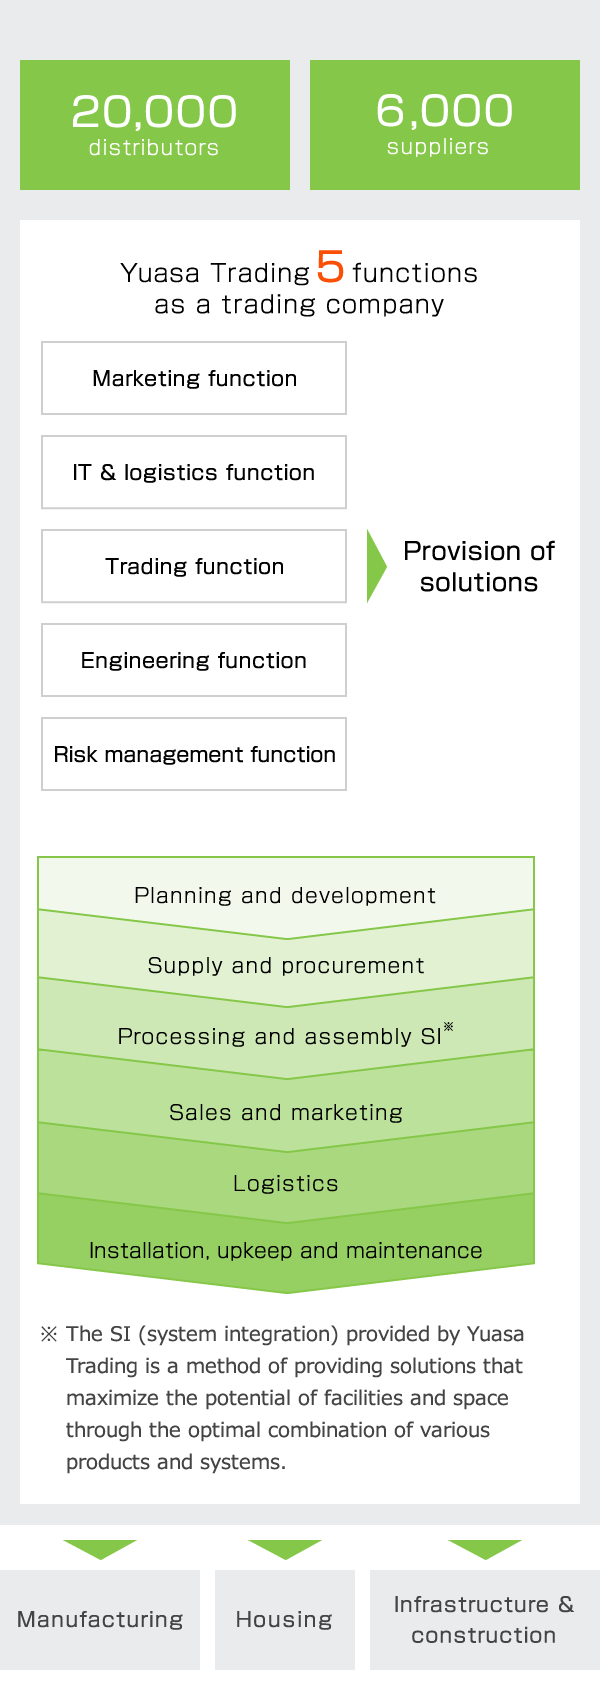 Yuasa Trading's Business (The Yuasa Value Chain)